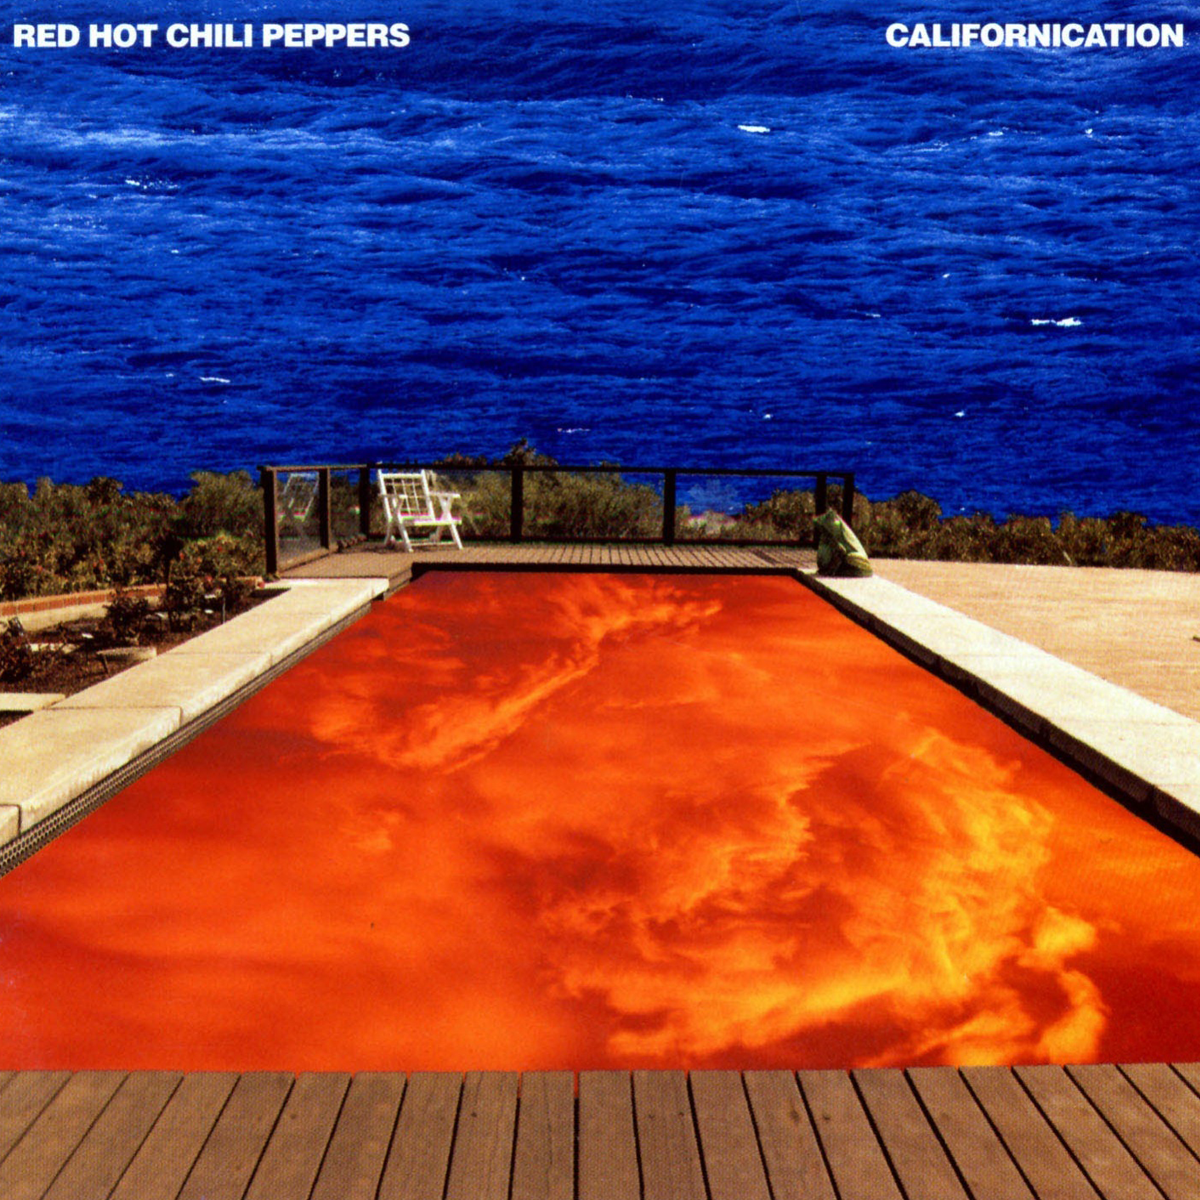 Red Hot Chili Peppers - Californication (Deluxe) MP3 Download